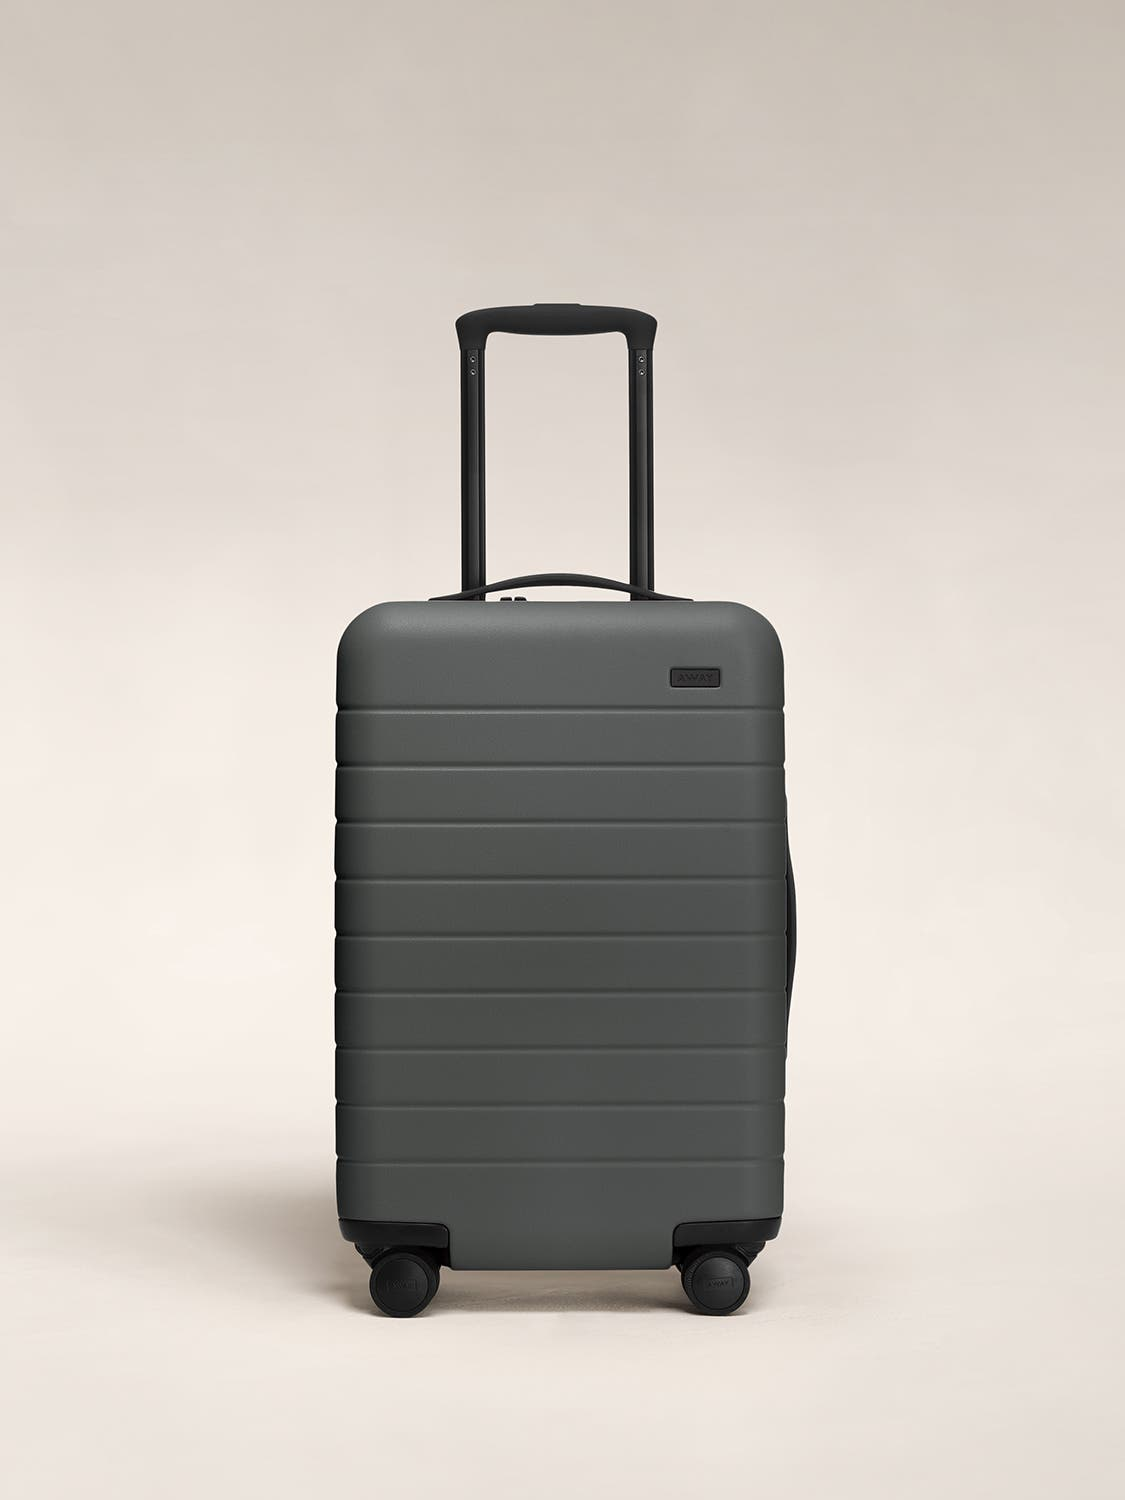 Front view of an asphalt carry-on suitcase with a hard shell, nylon front pocket, and telescopic handle pulled out.